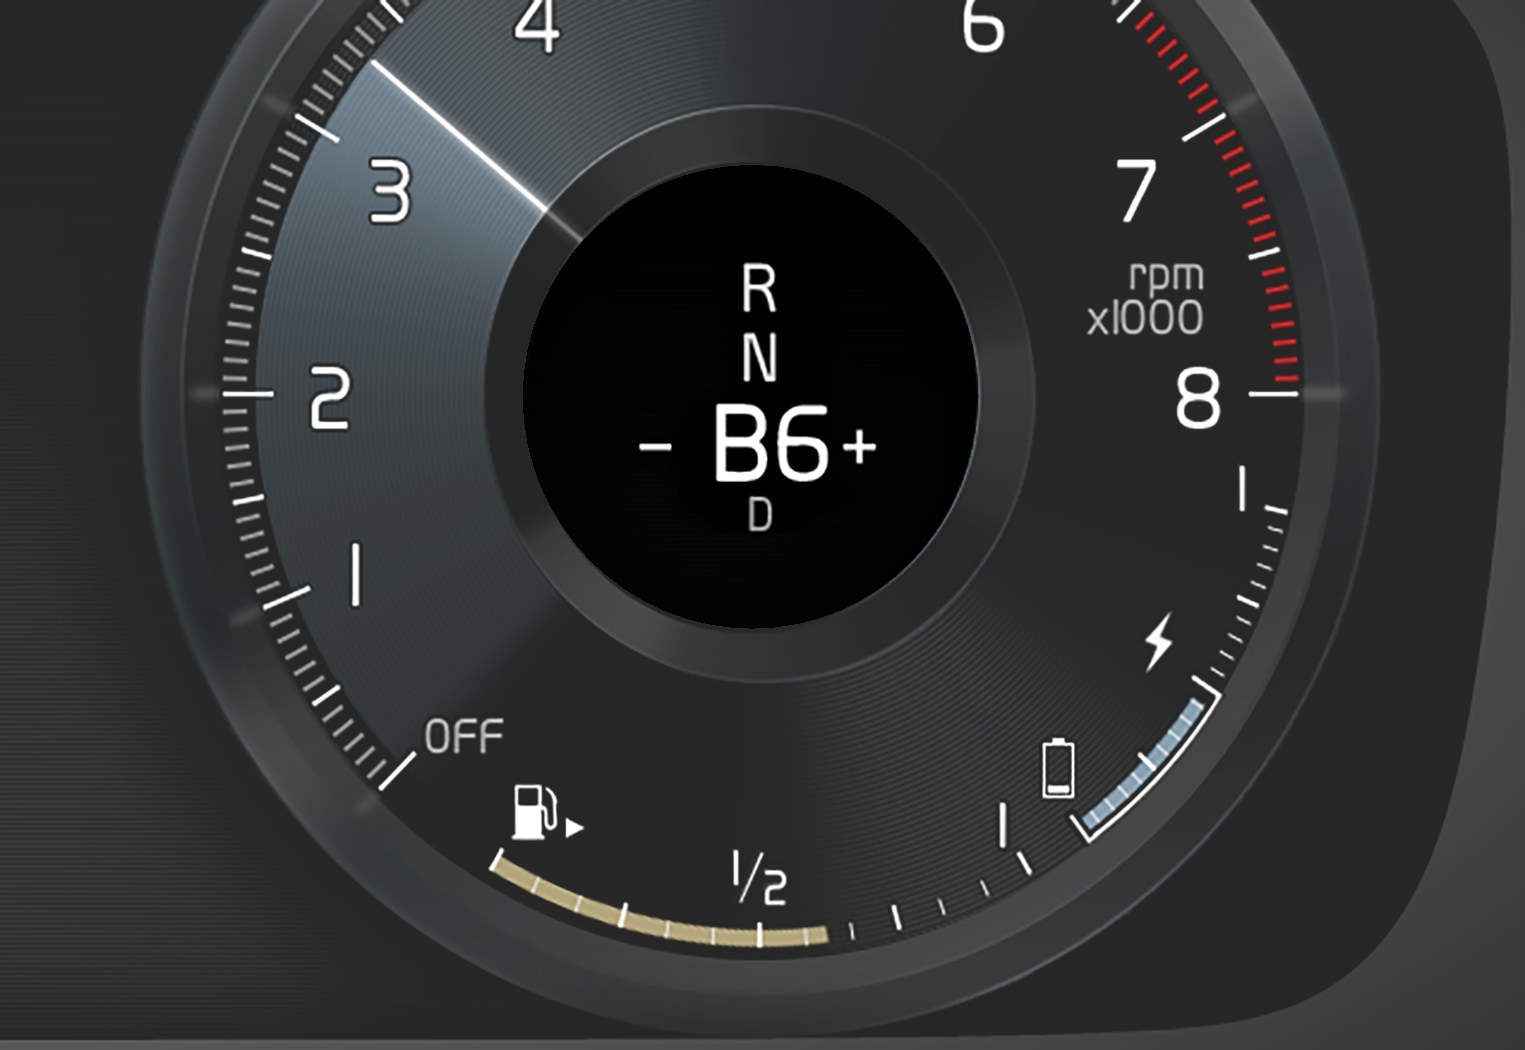 P6-1846-XC40H-Gear shift mode B in driver display